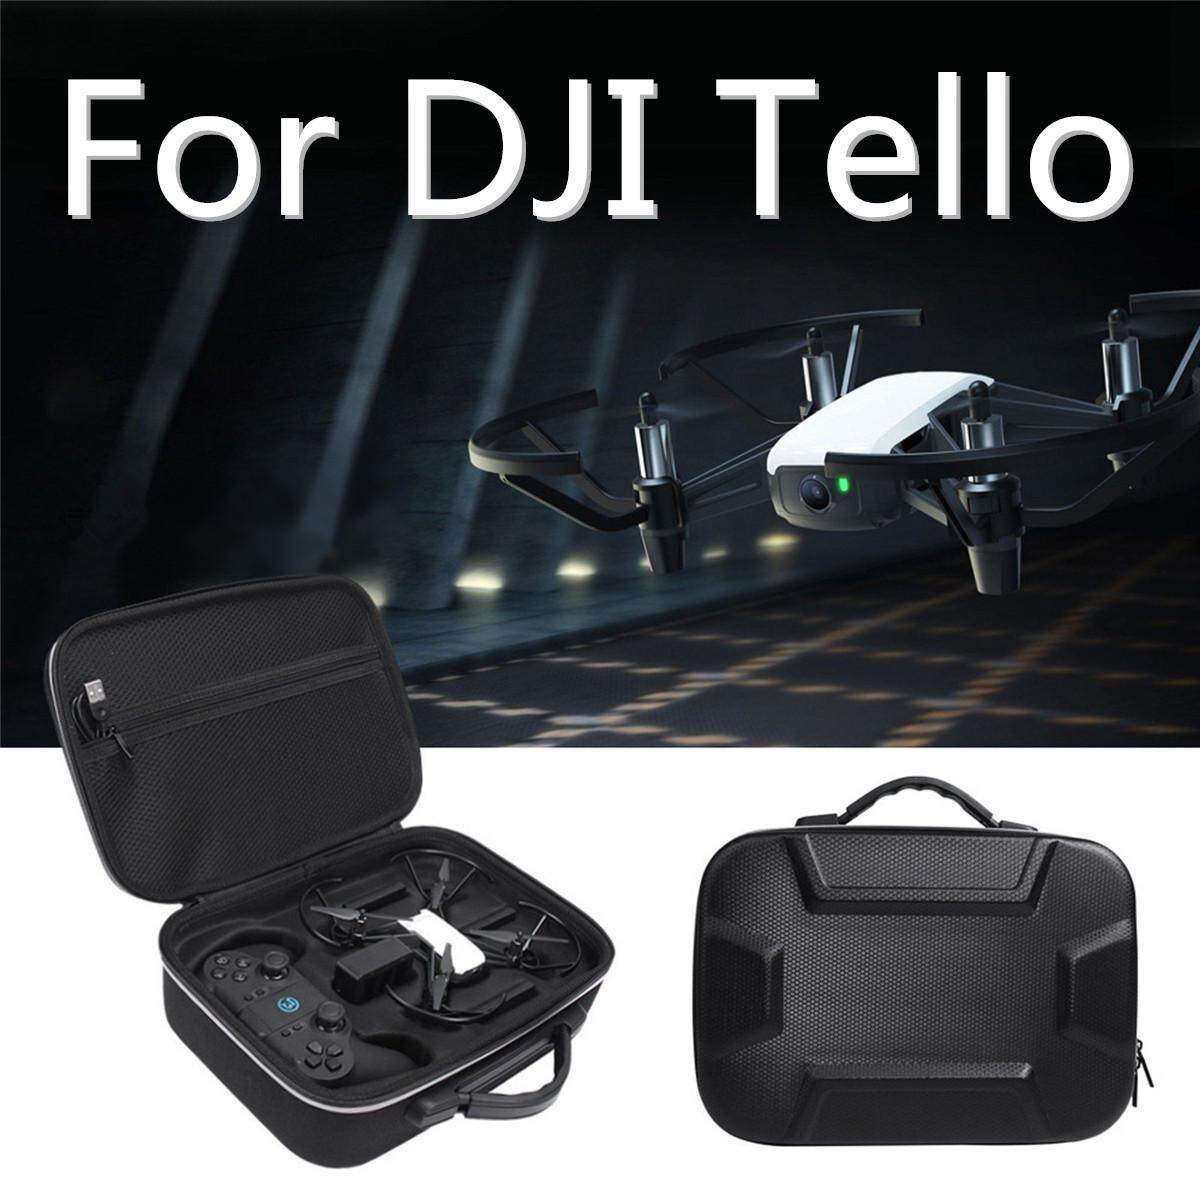 Multifunction Storage Case Carry Bag For DJI Tello Drone & GameSir T1d Remote